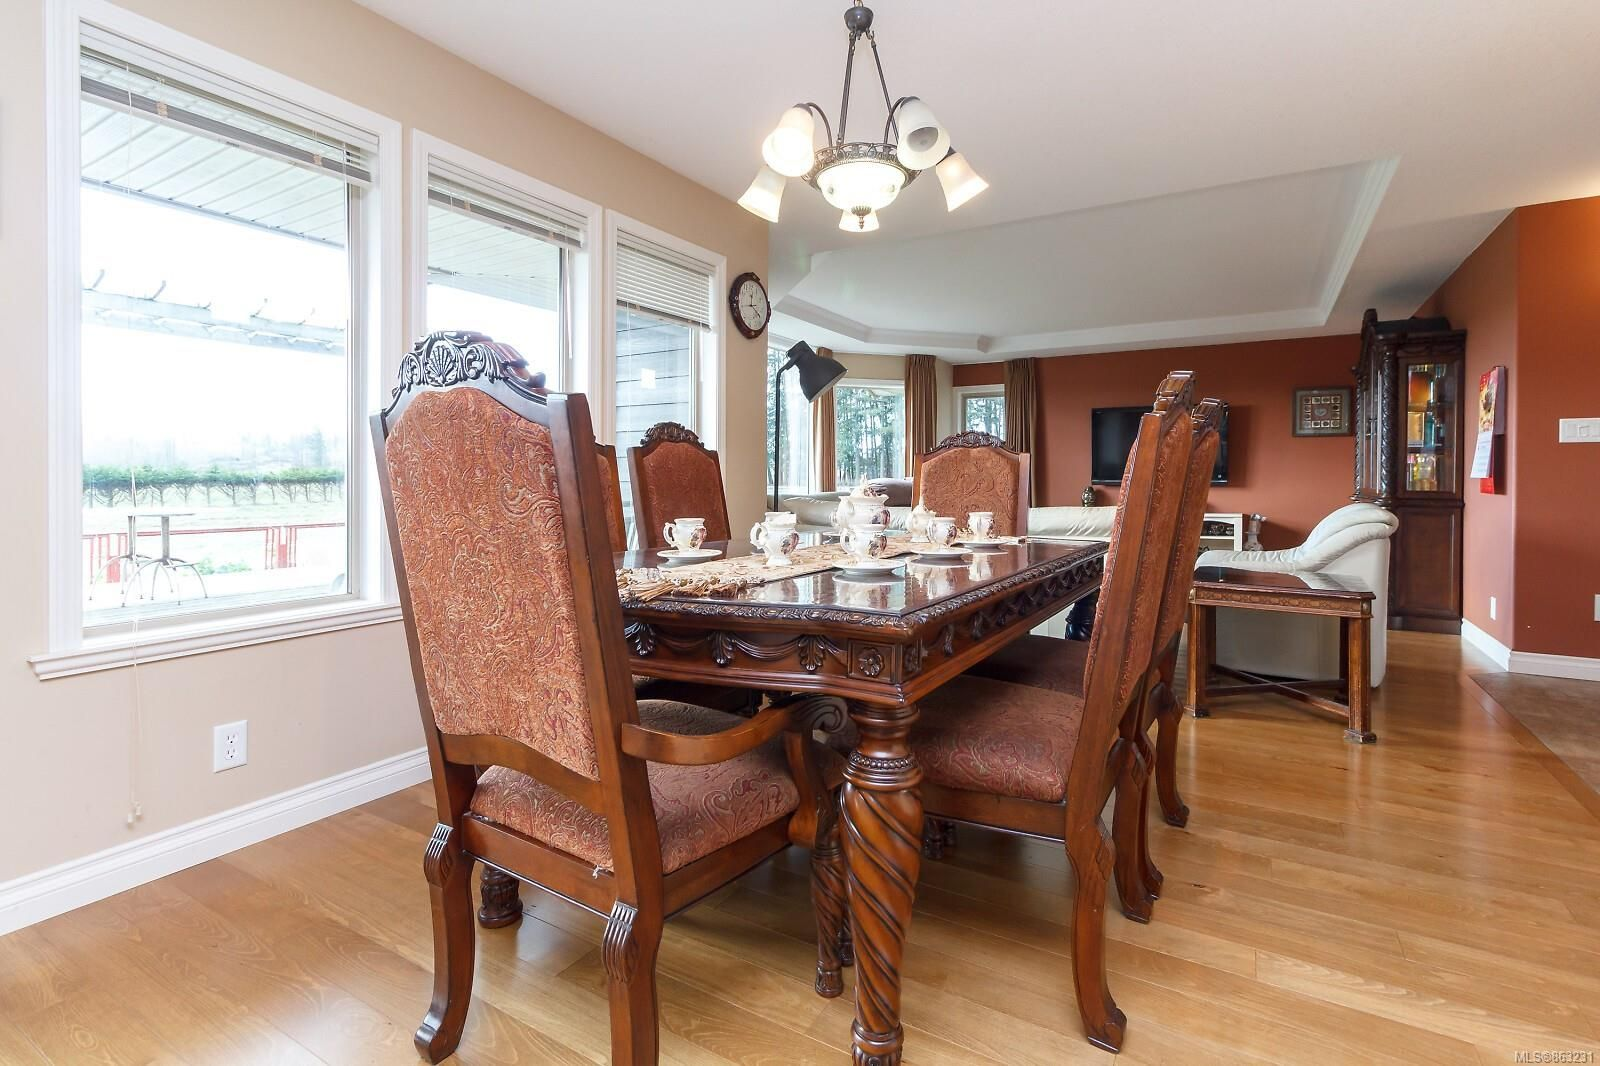 Photo 7: Photos: 1230 Hodges Rd in : PQ French Creek House for sale (Parksville/Qualicum)  : MLS®# 863231